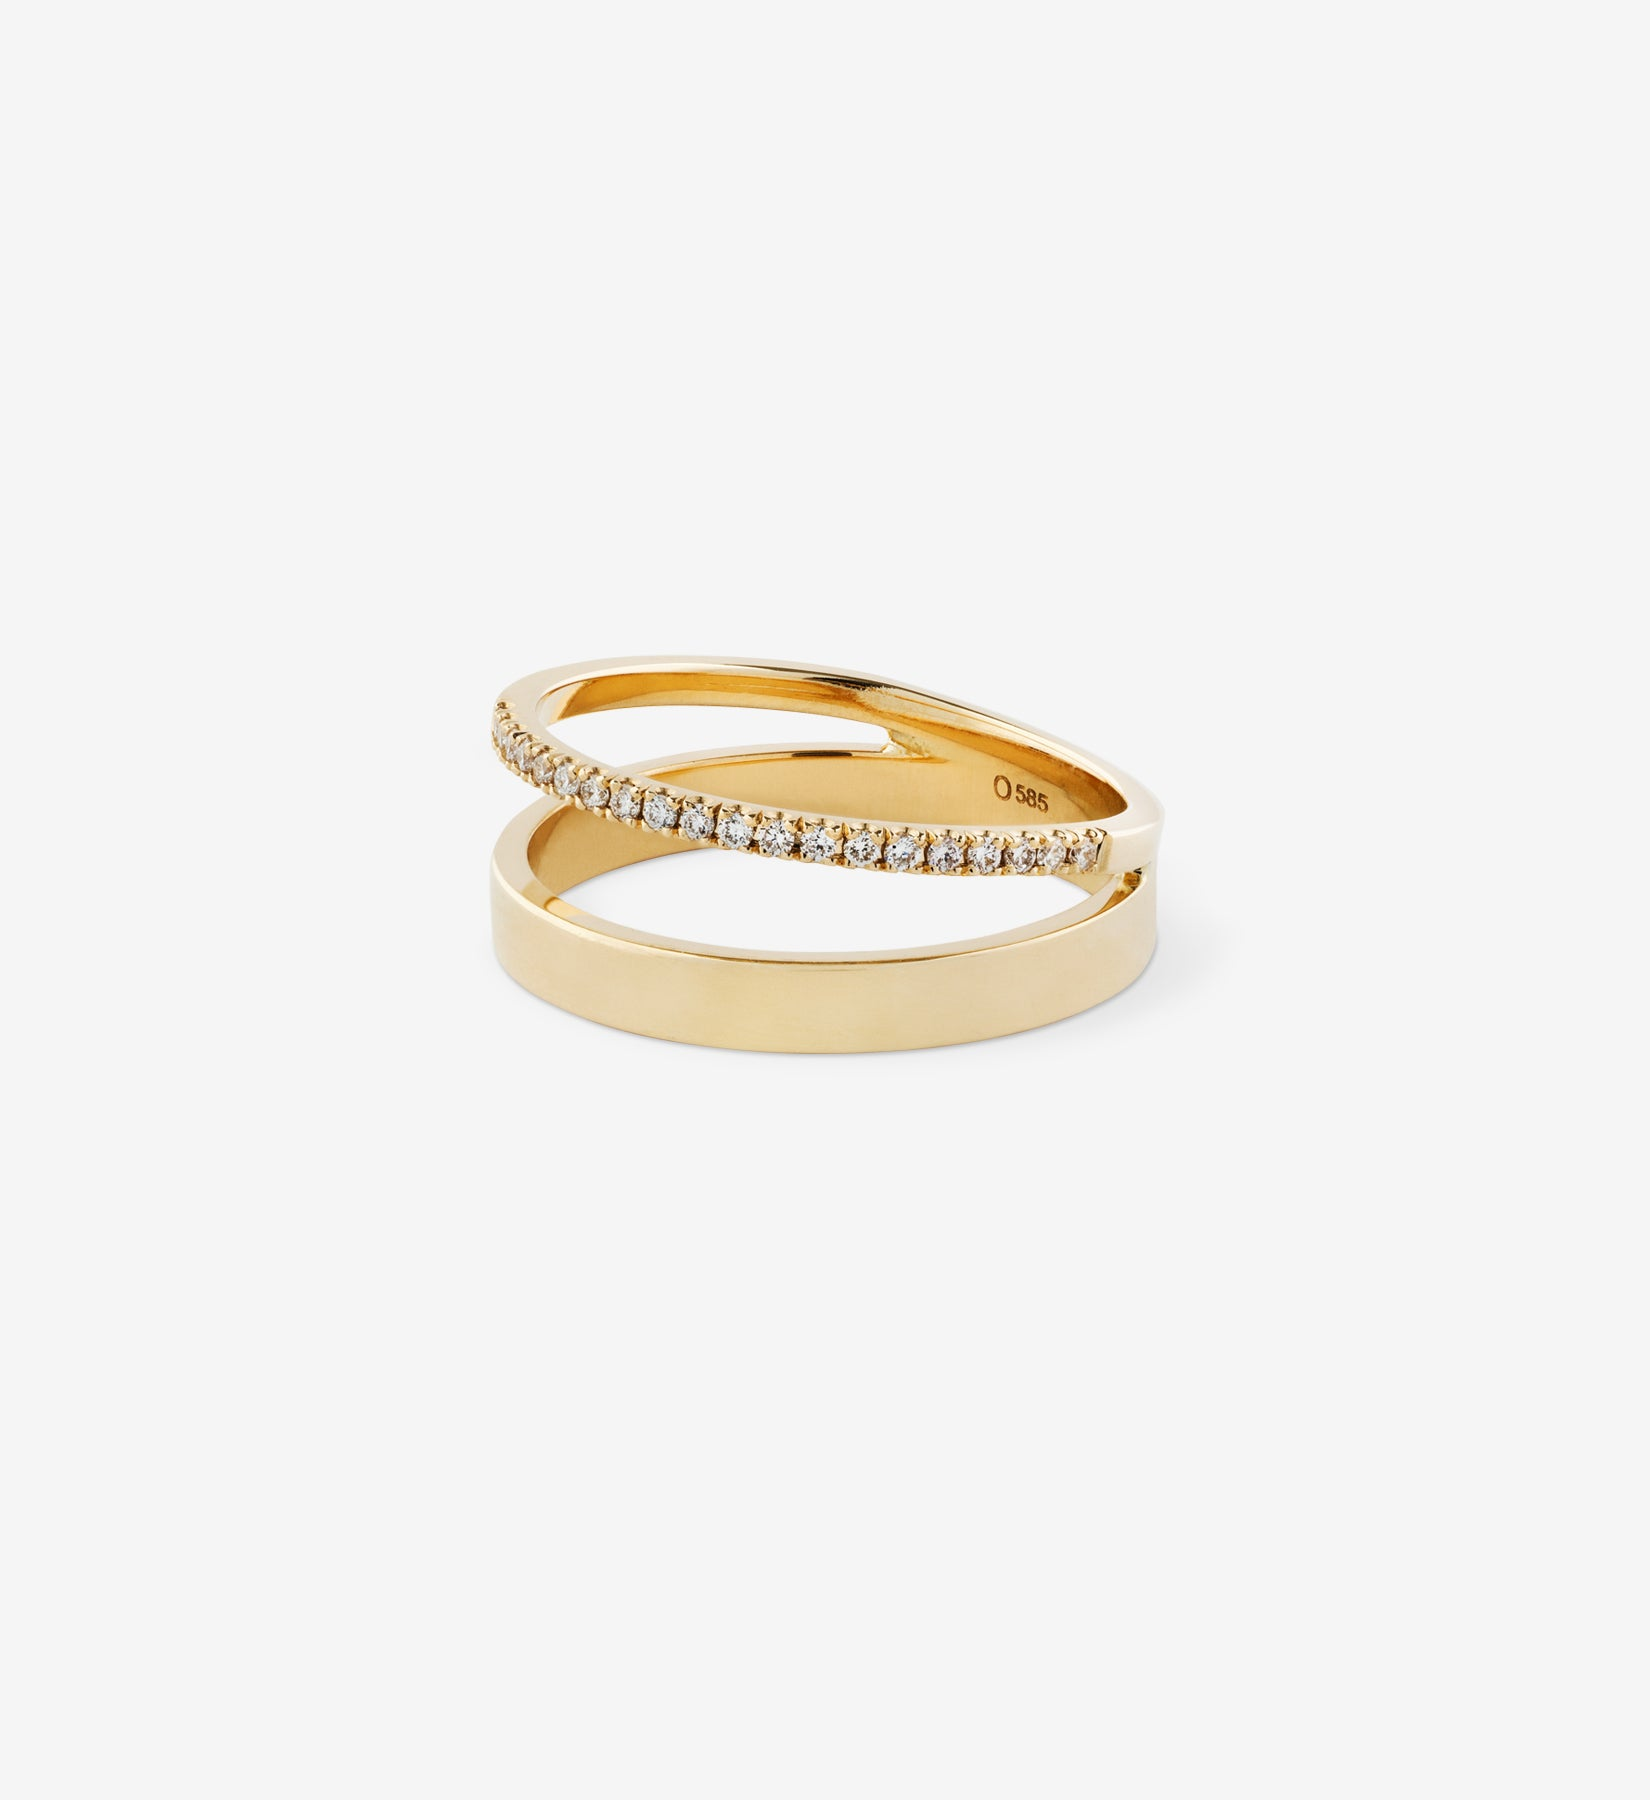 OUVERTURE, Fine jewelry, 14K gold, diamonds, golden ring, diamond ring, golden earring, diamond earring. Handcrafted jewelry. Designed in Berlin. Honestly priced. Demifine. Stacking rings, schmuck, diamant ring, double ring 0.00